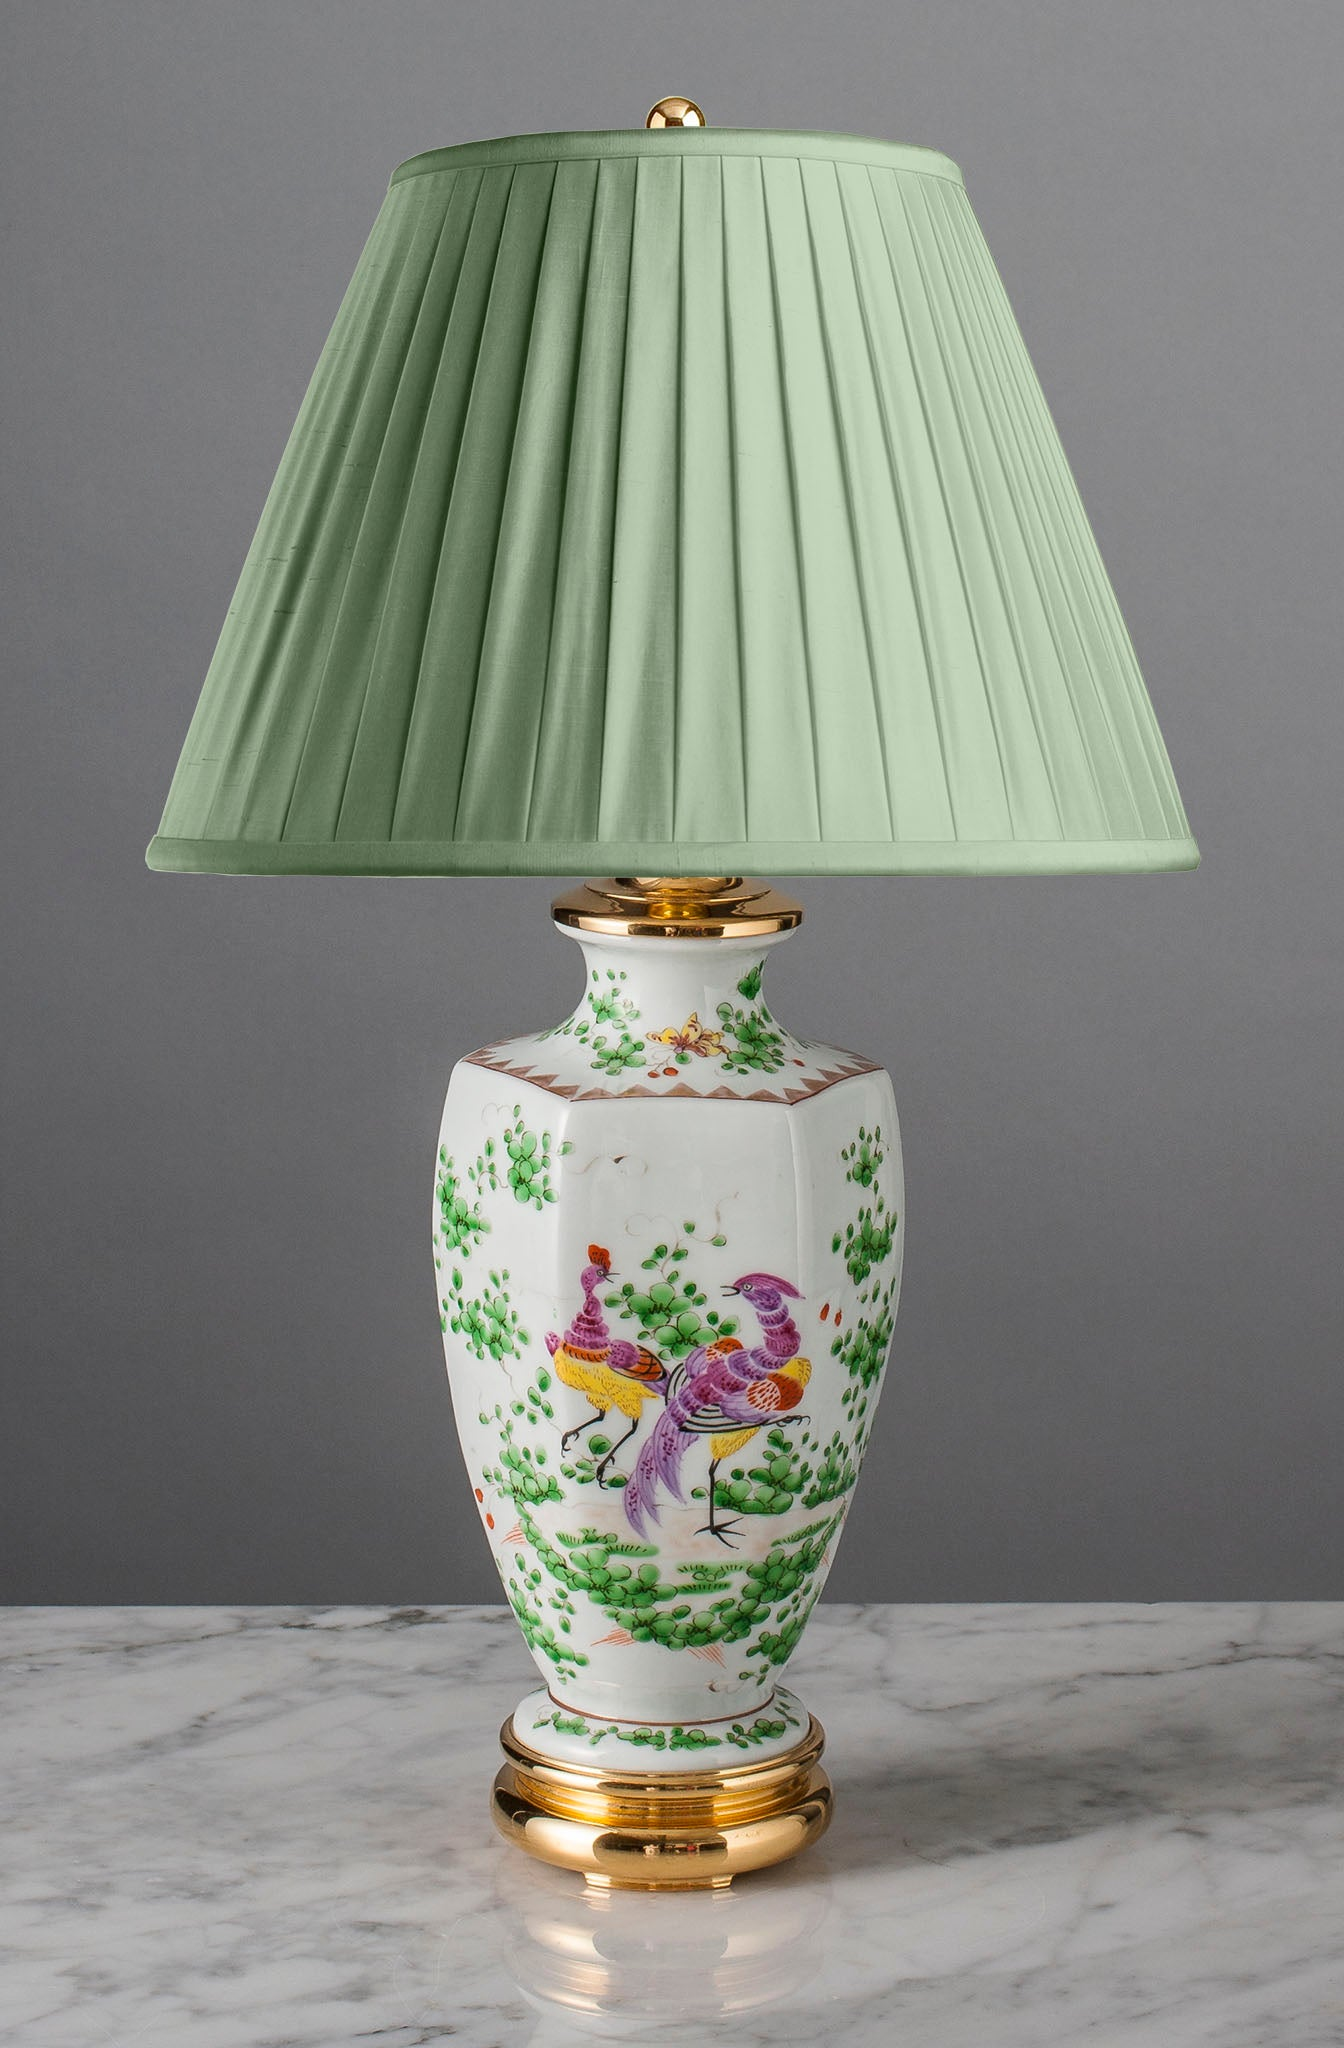 A026  A Decorative, 19th Century, French, Edmé Samson of Paris Lamp - Circa 1880